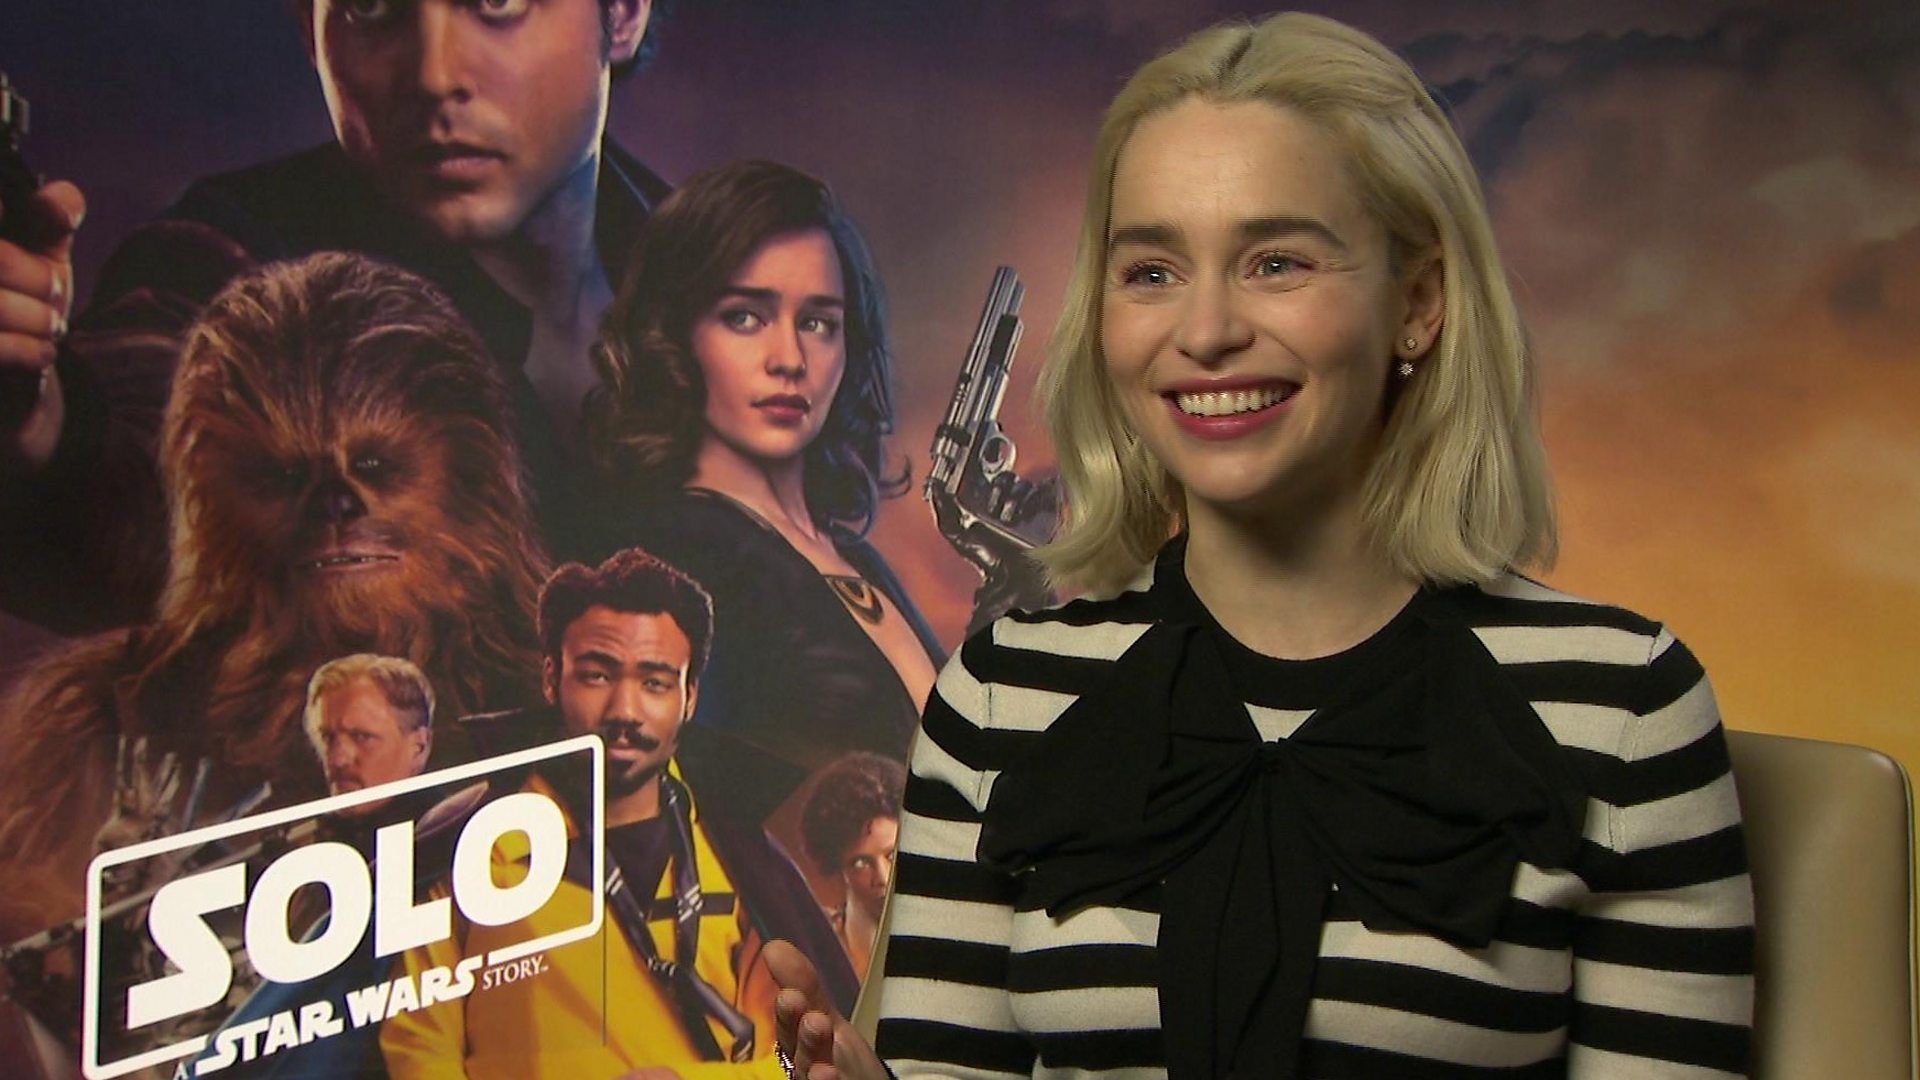 Star Wars Emilia Clarke Says Franchise Now Puts Women Front And Centre Bbc News